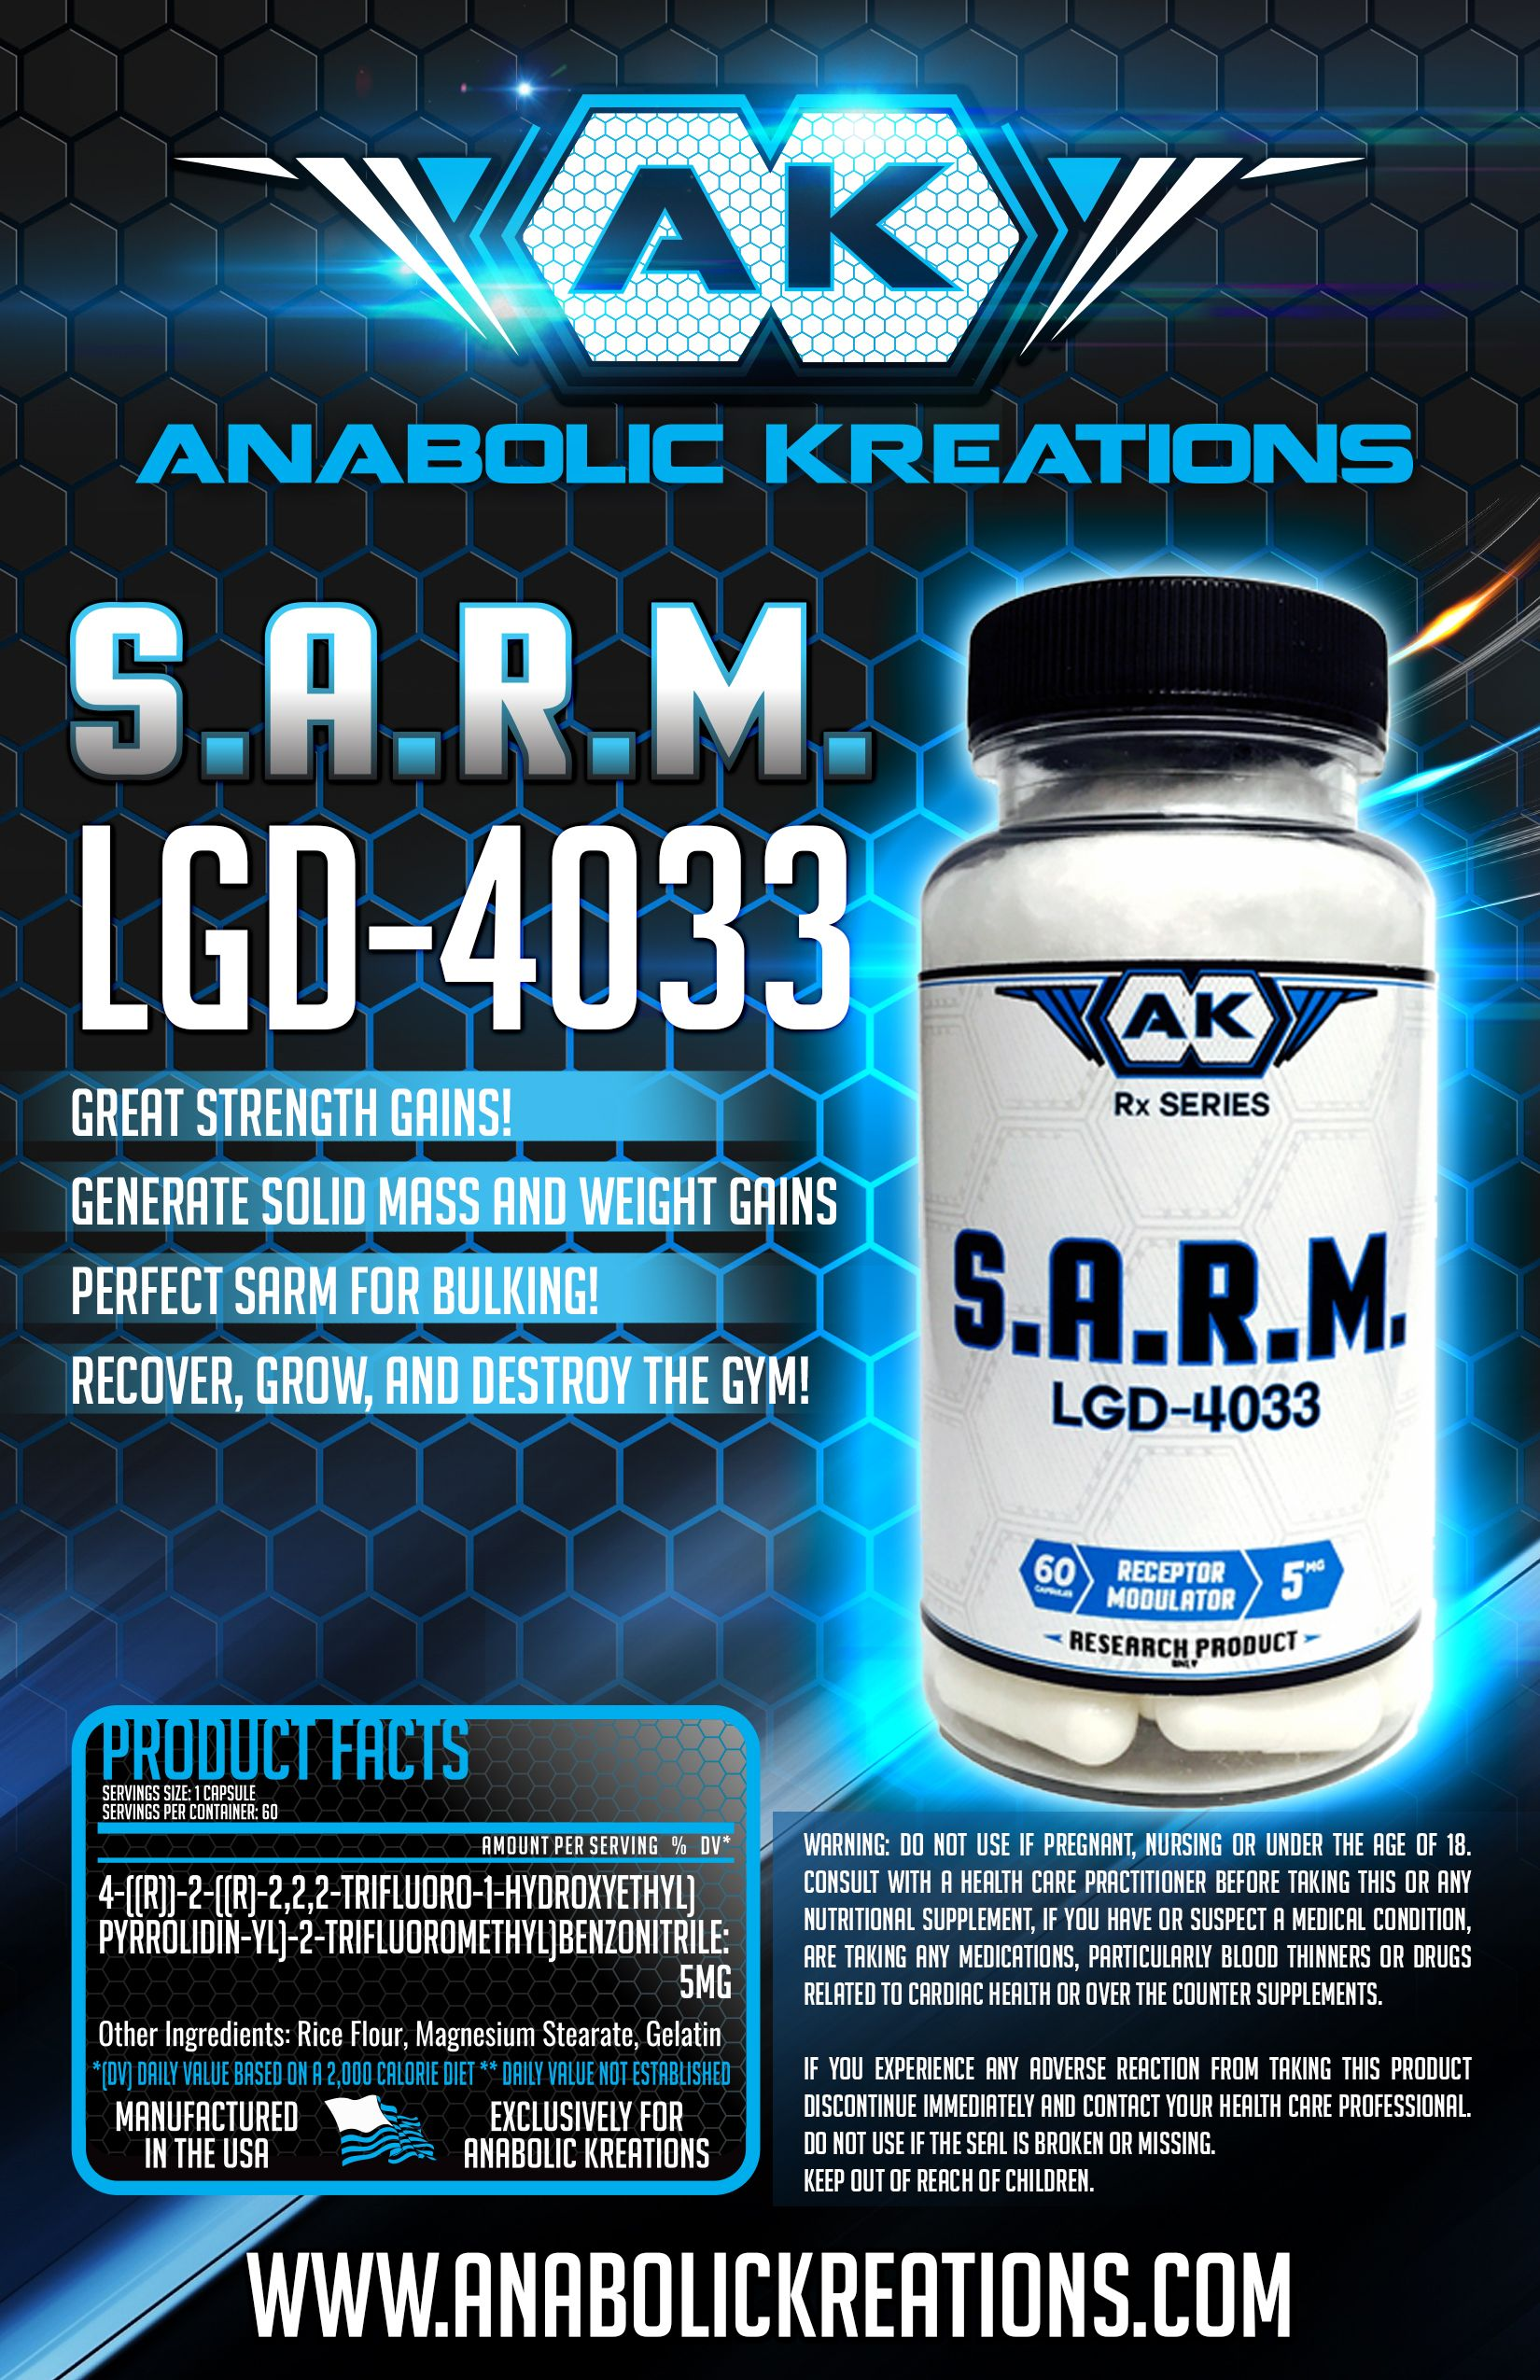 Anabolic Kreations SARM LGD-4033 #gains #solidmuscle